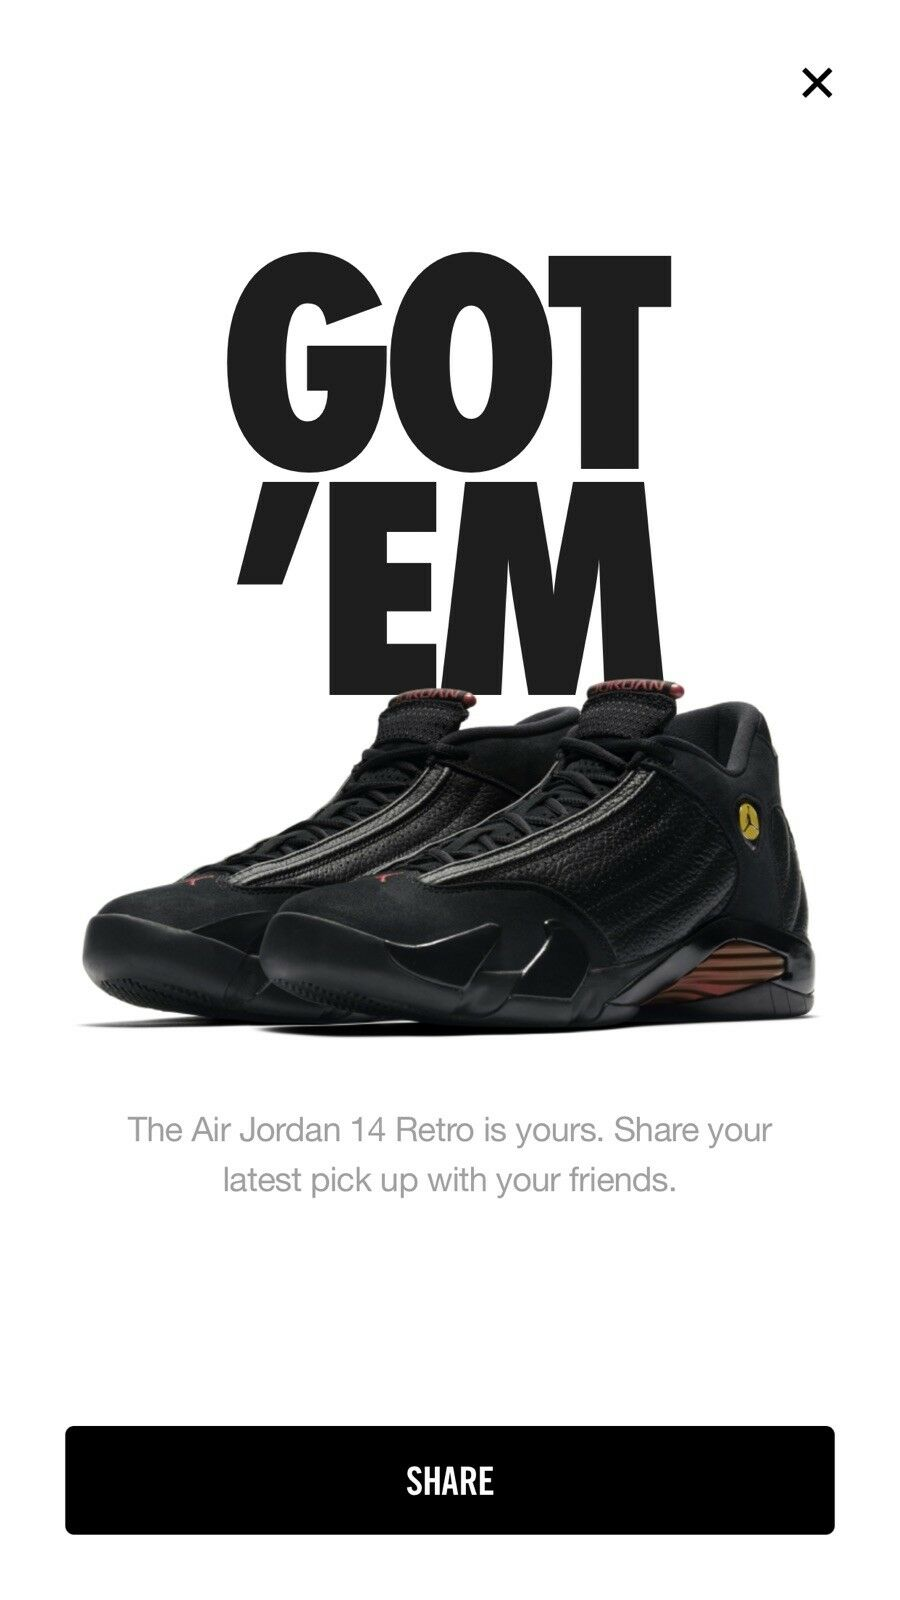 """Nike Air Jordan XIV 14 Retro """"Last Shot"""" size 13 New shoes for men and women, limited time discount"""